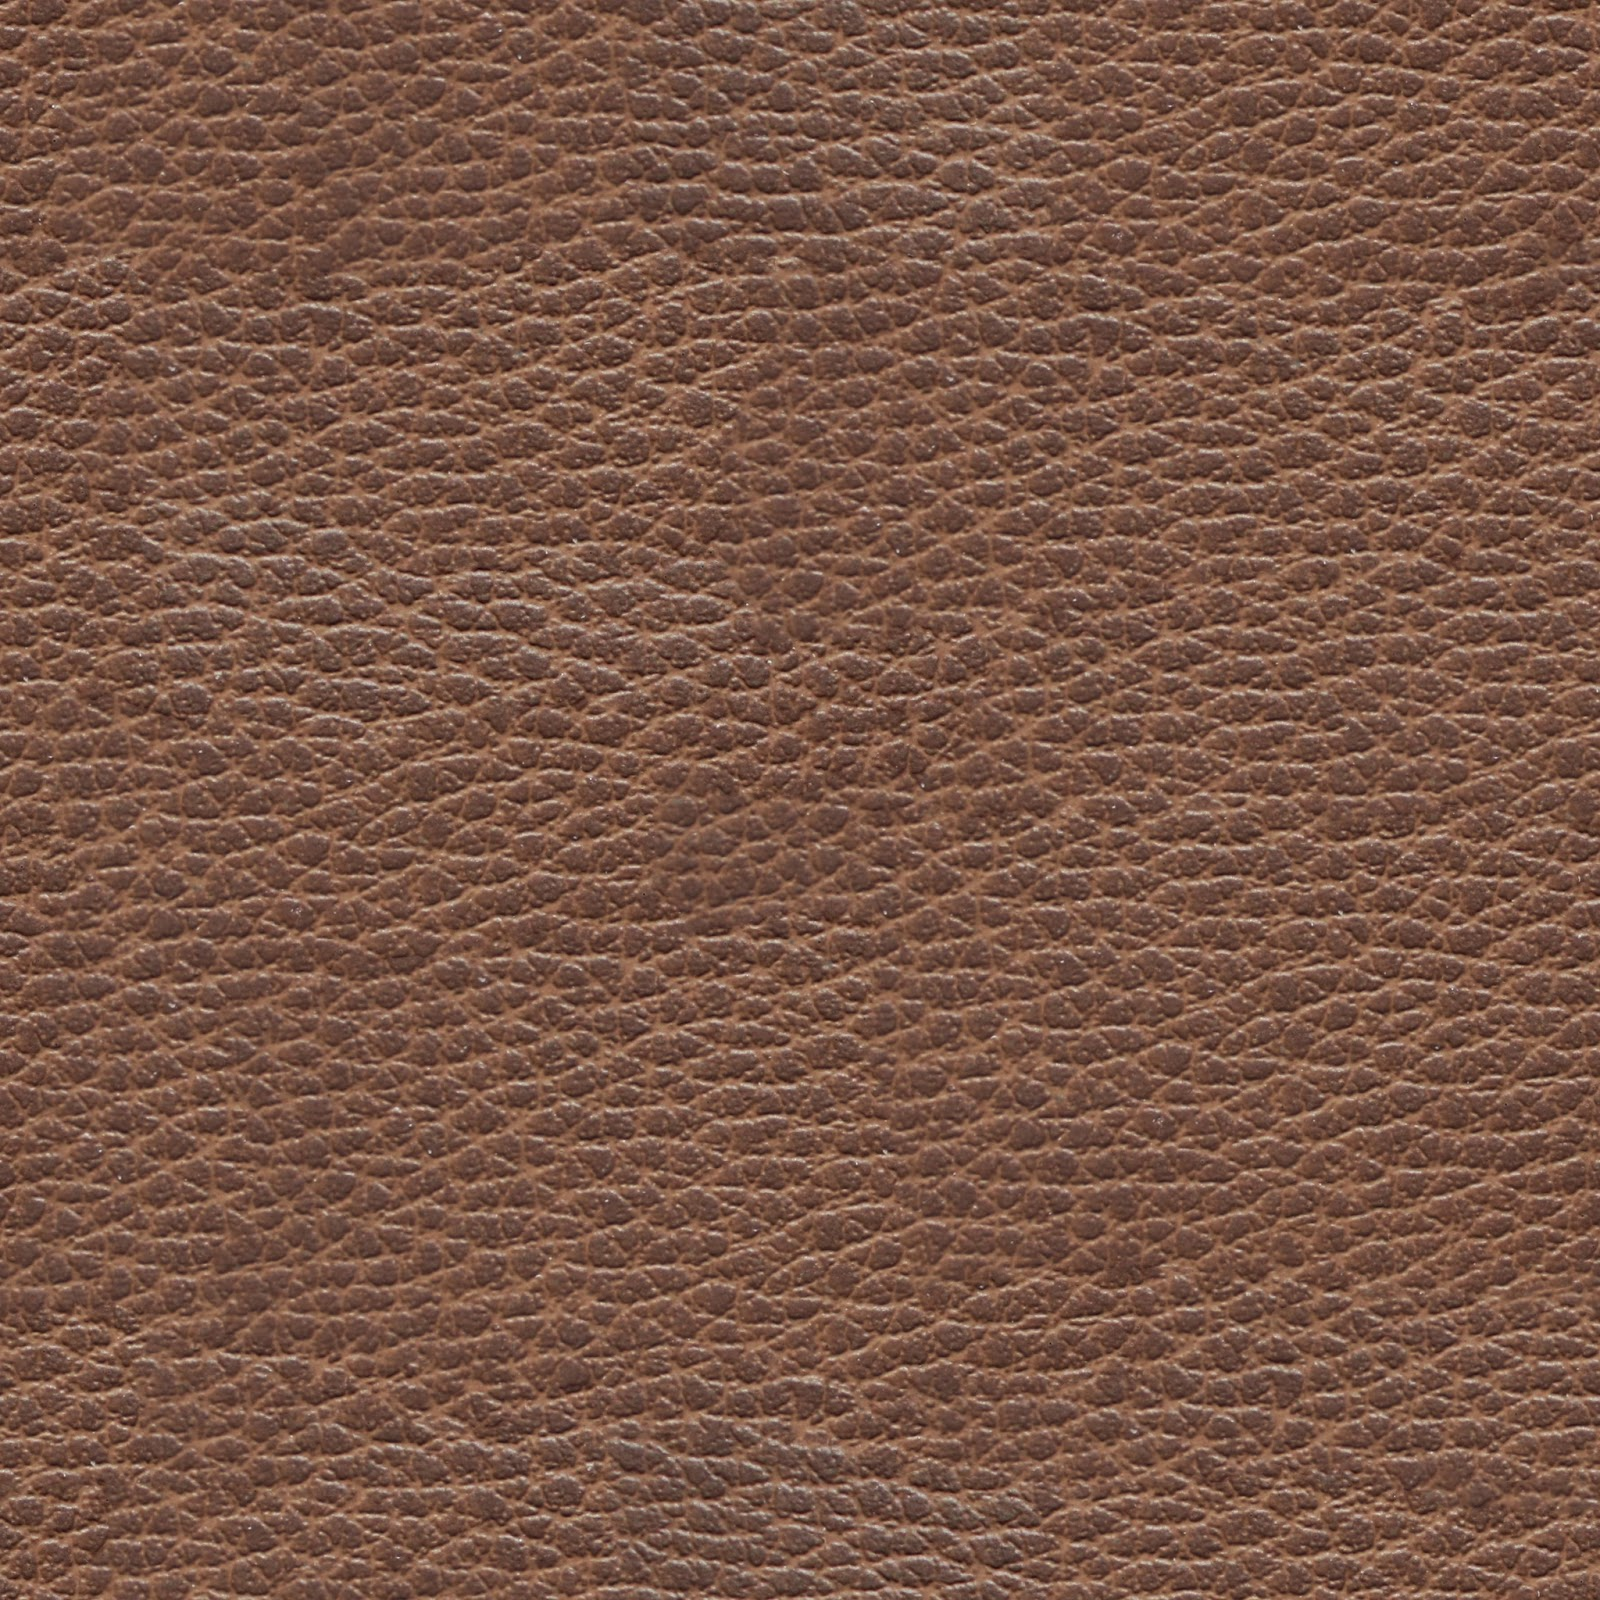 Seamless Brown Leather Texture Maps Texturise Free